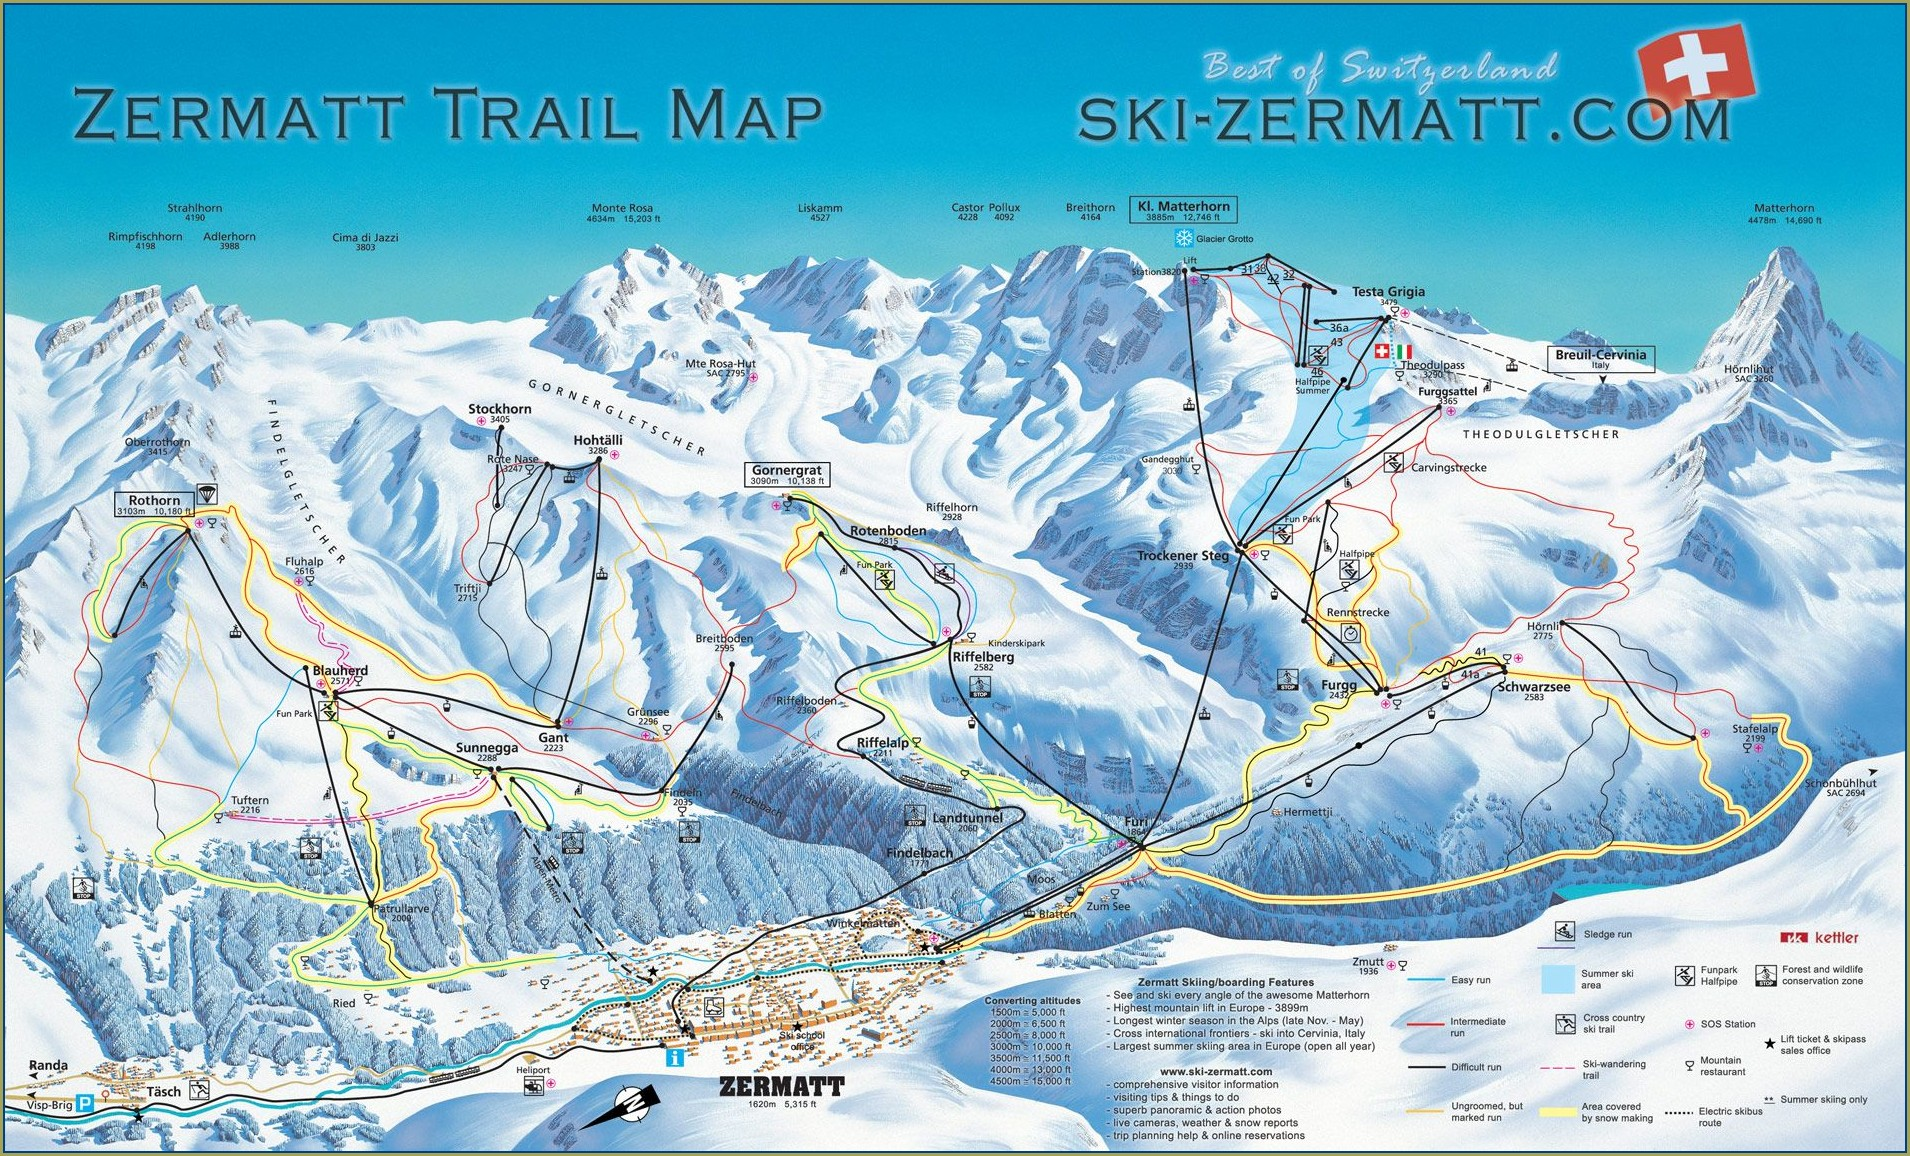 Zermatt Ski Resort Trail Map